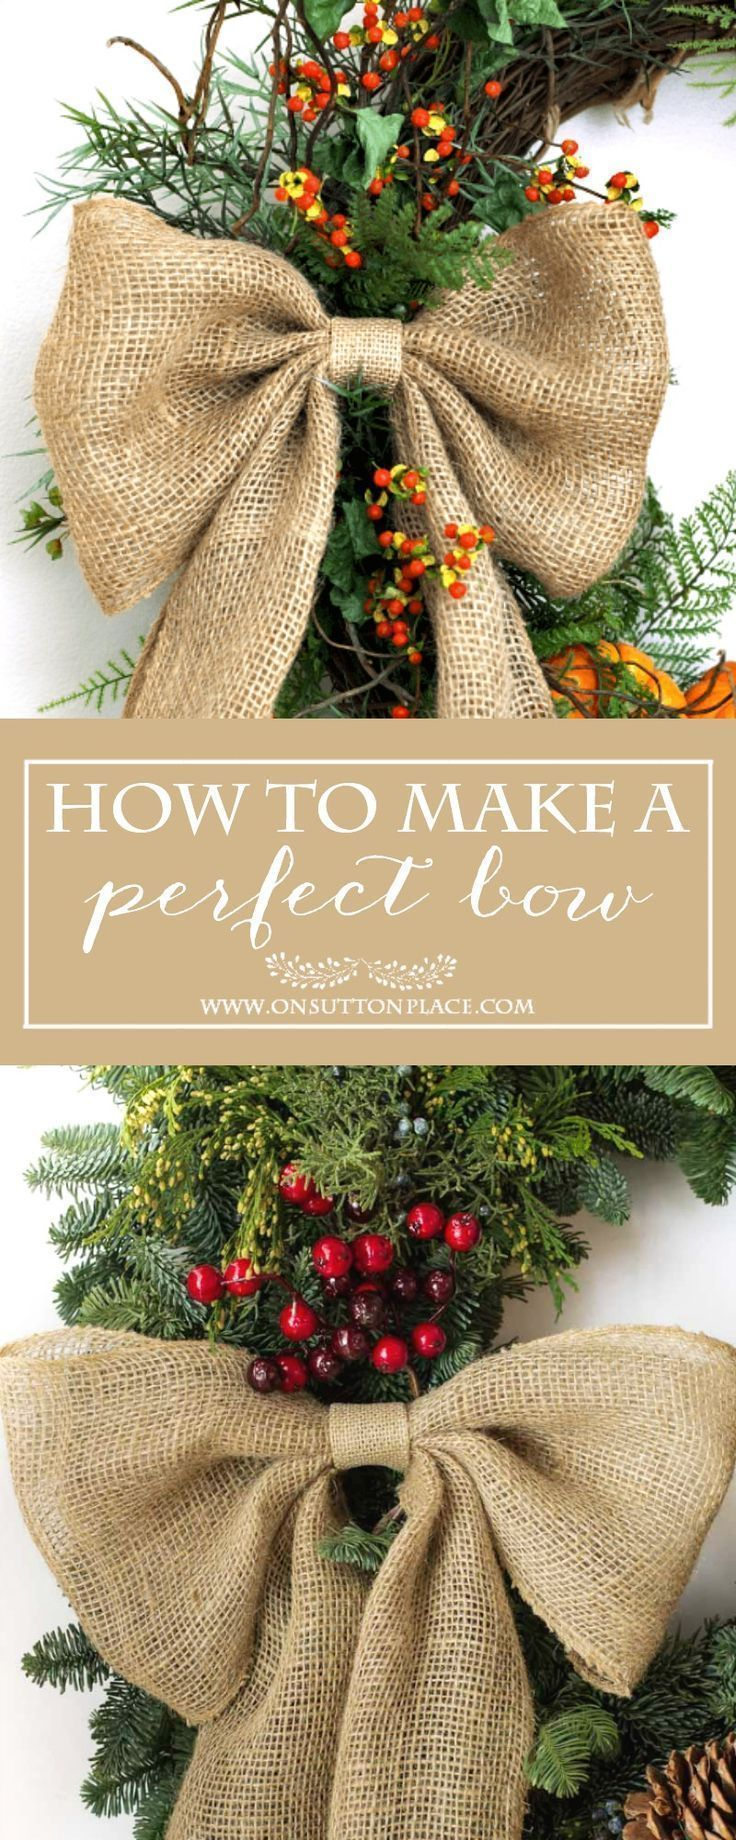 How to Make a Perfect Burlap Bow   Easy tutorial to make a perfect bow every time. Use for wreaths, stairway garlands and more. Great for holiday and Christmas wreaths.